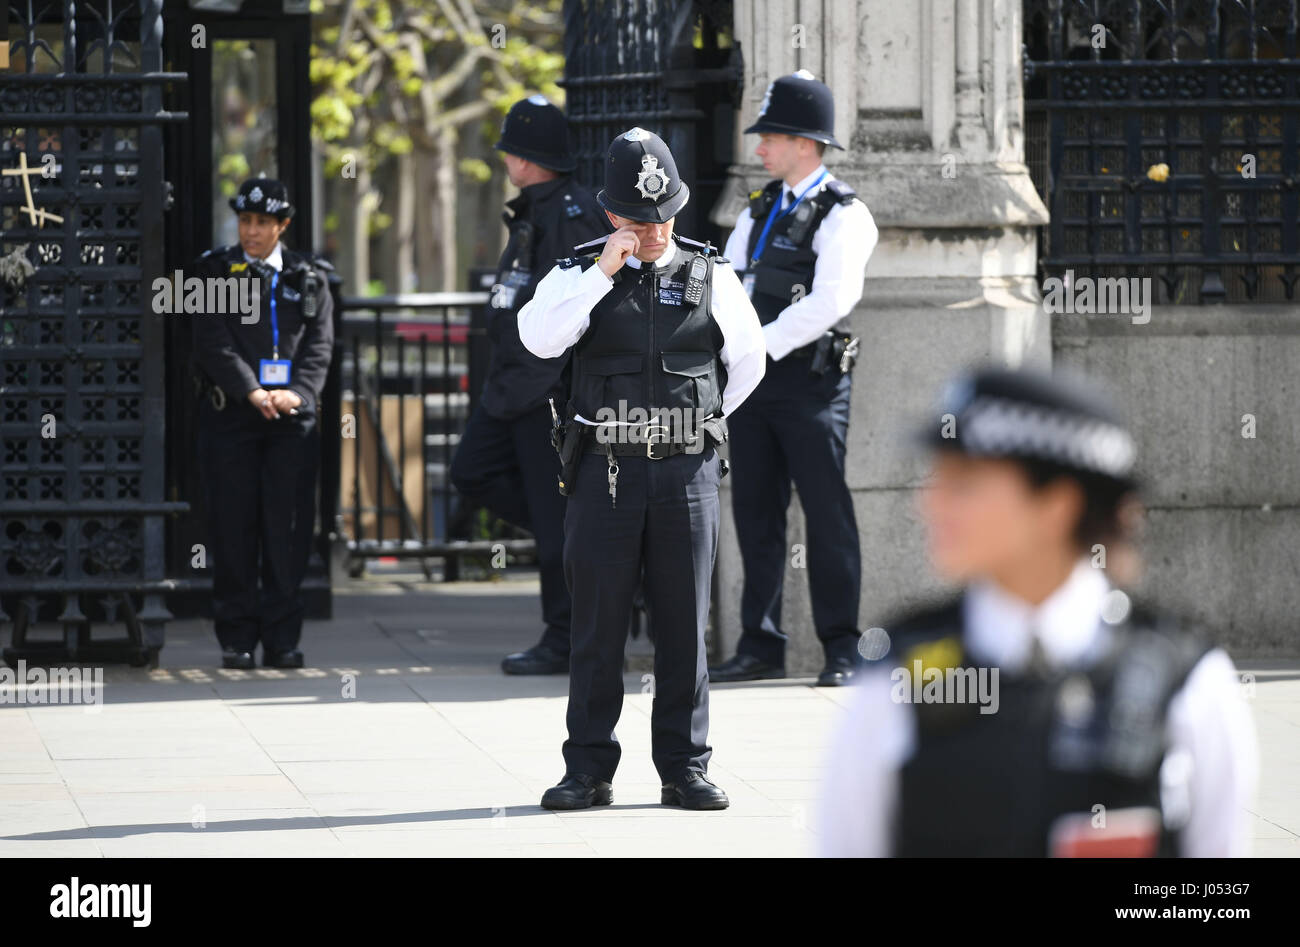 A police officer rubs his eye outside the Houses of Parliament, London, ahead of the funeral of Pc Keith Palmer. - Stock Image